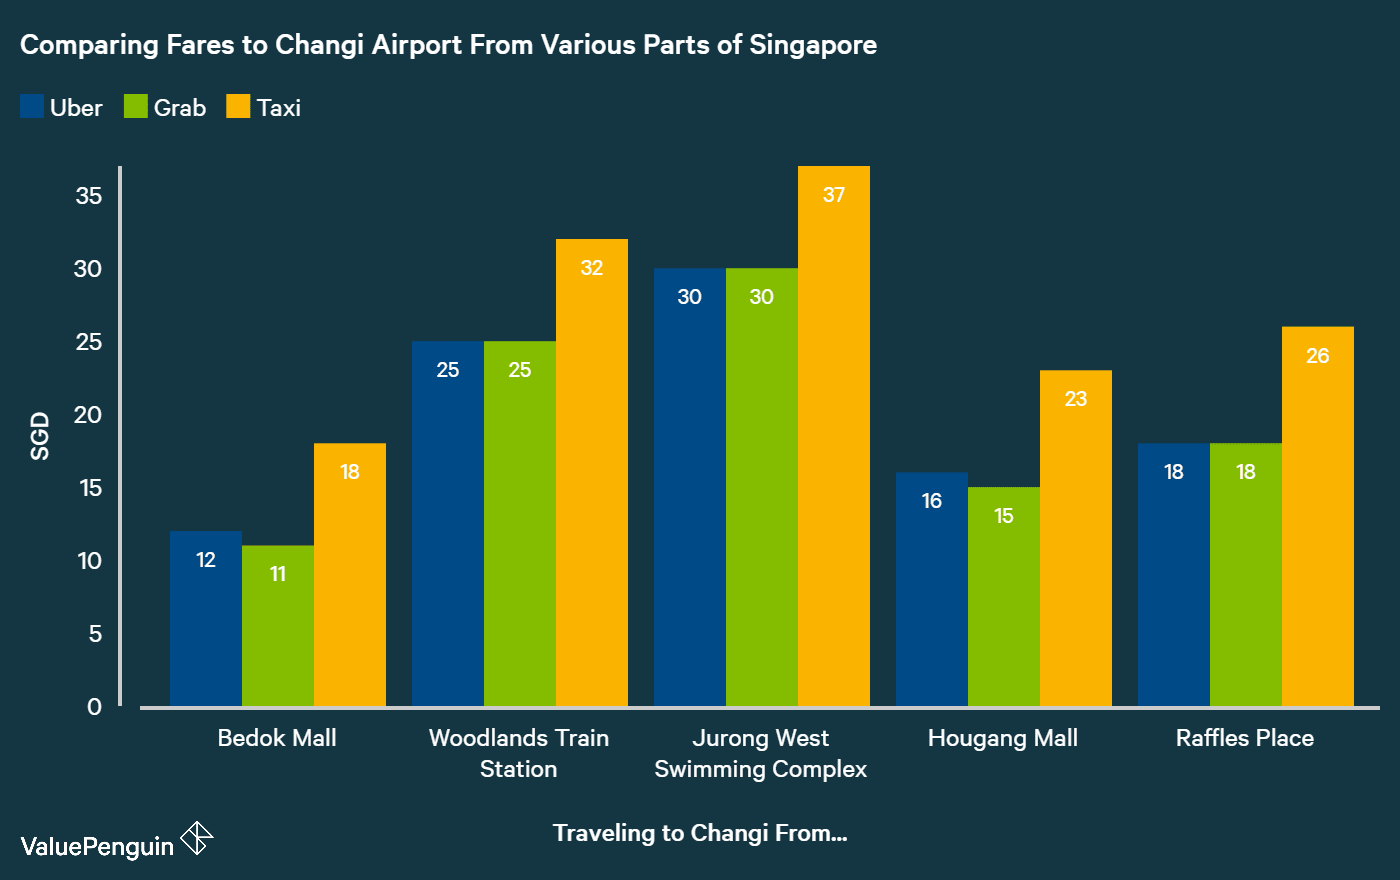 comparing taxi fares to changi airport from various parts of Singapore to fares of Uber and Grab rides